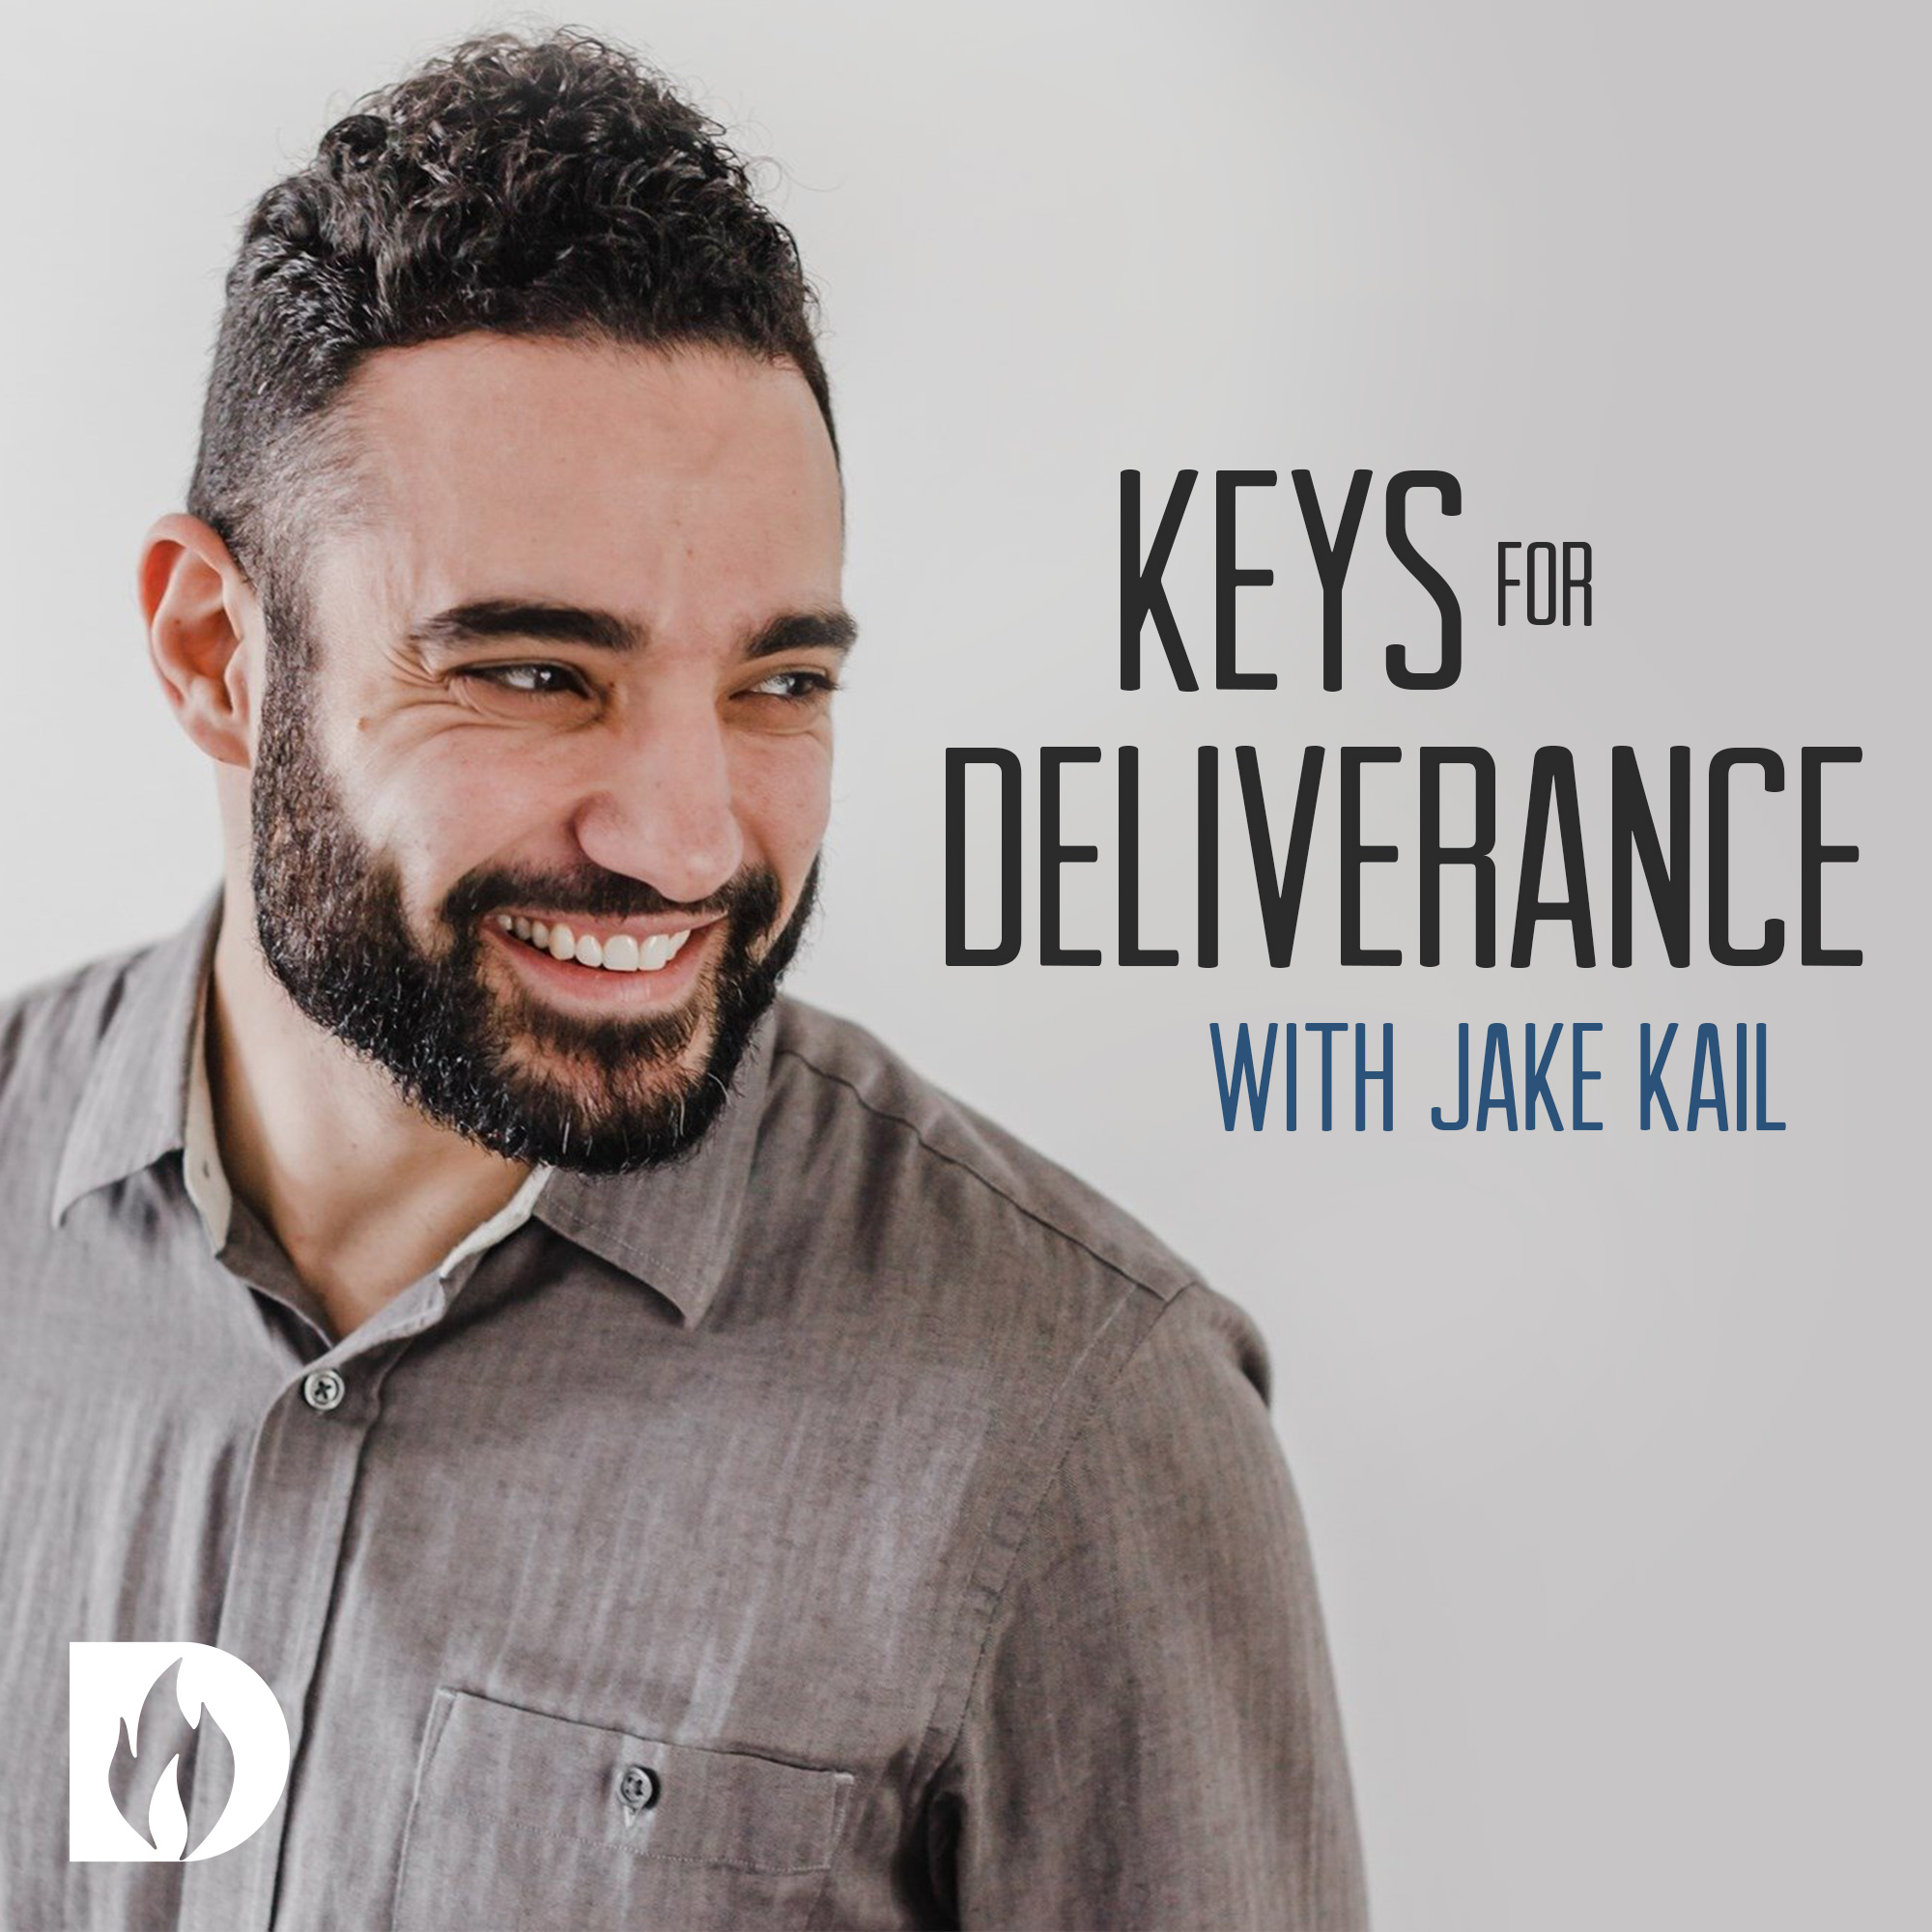 69: Deliverance From the Spirit of Addiction